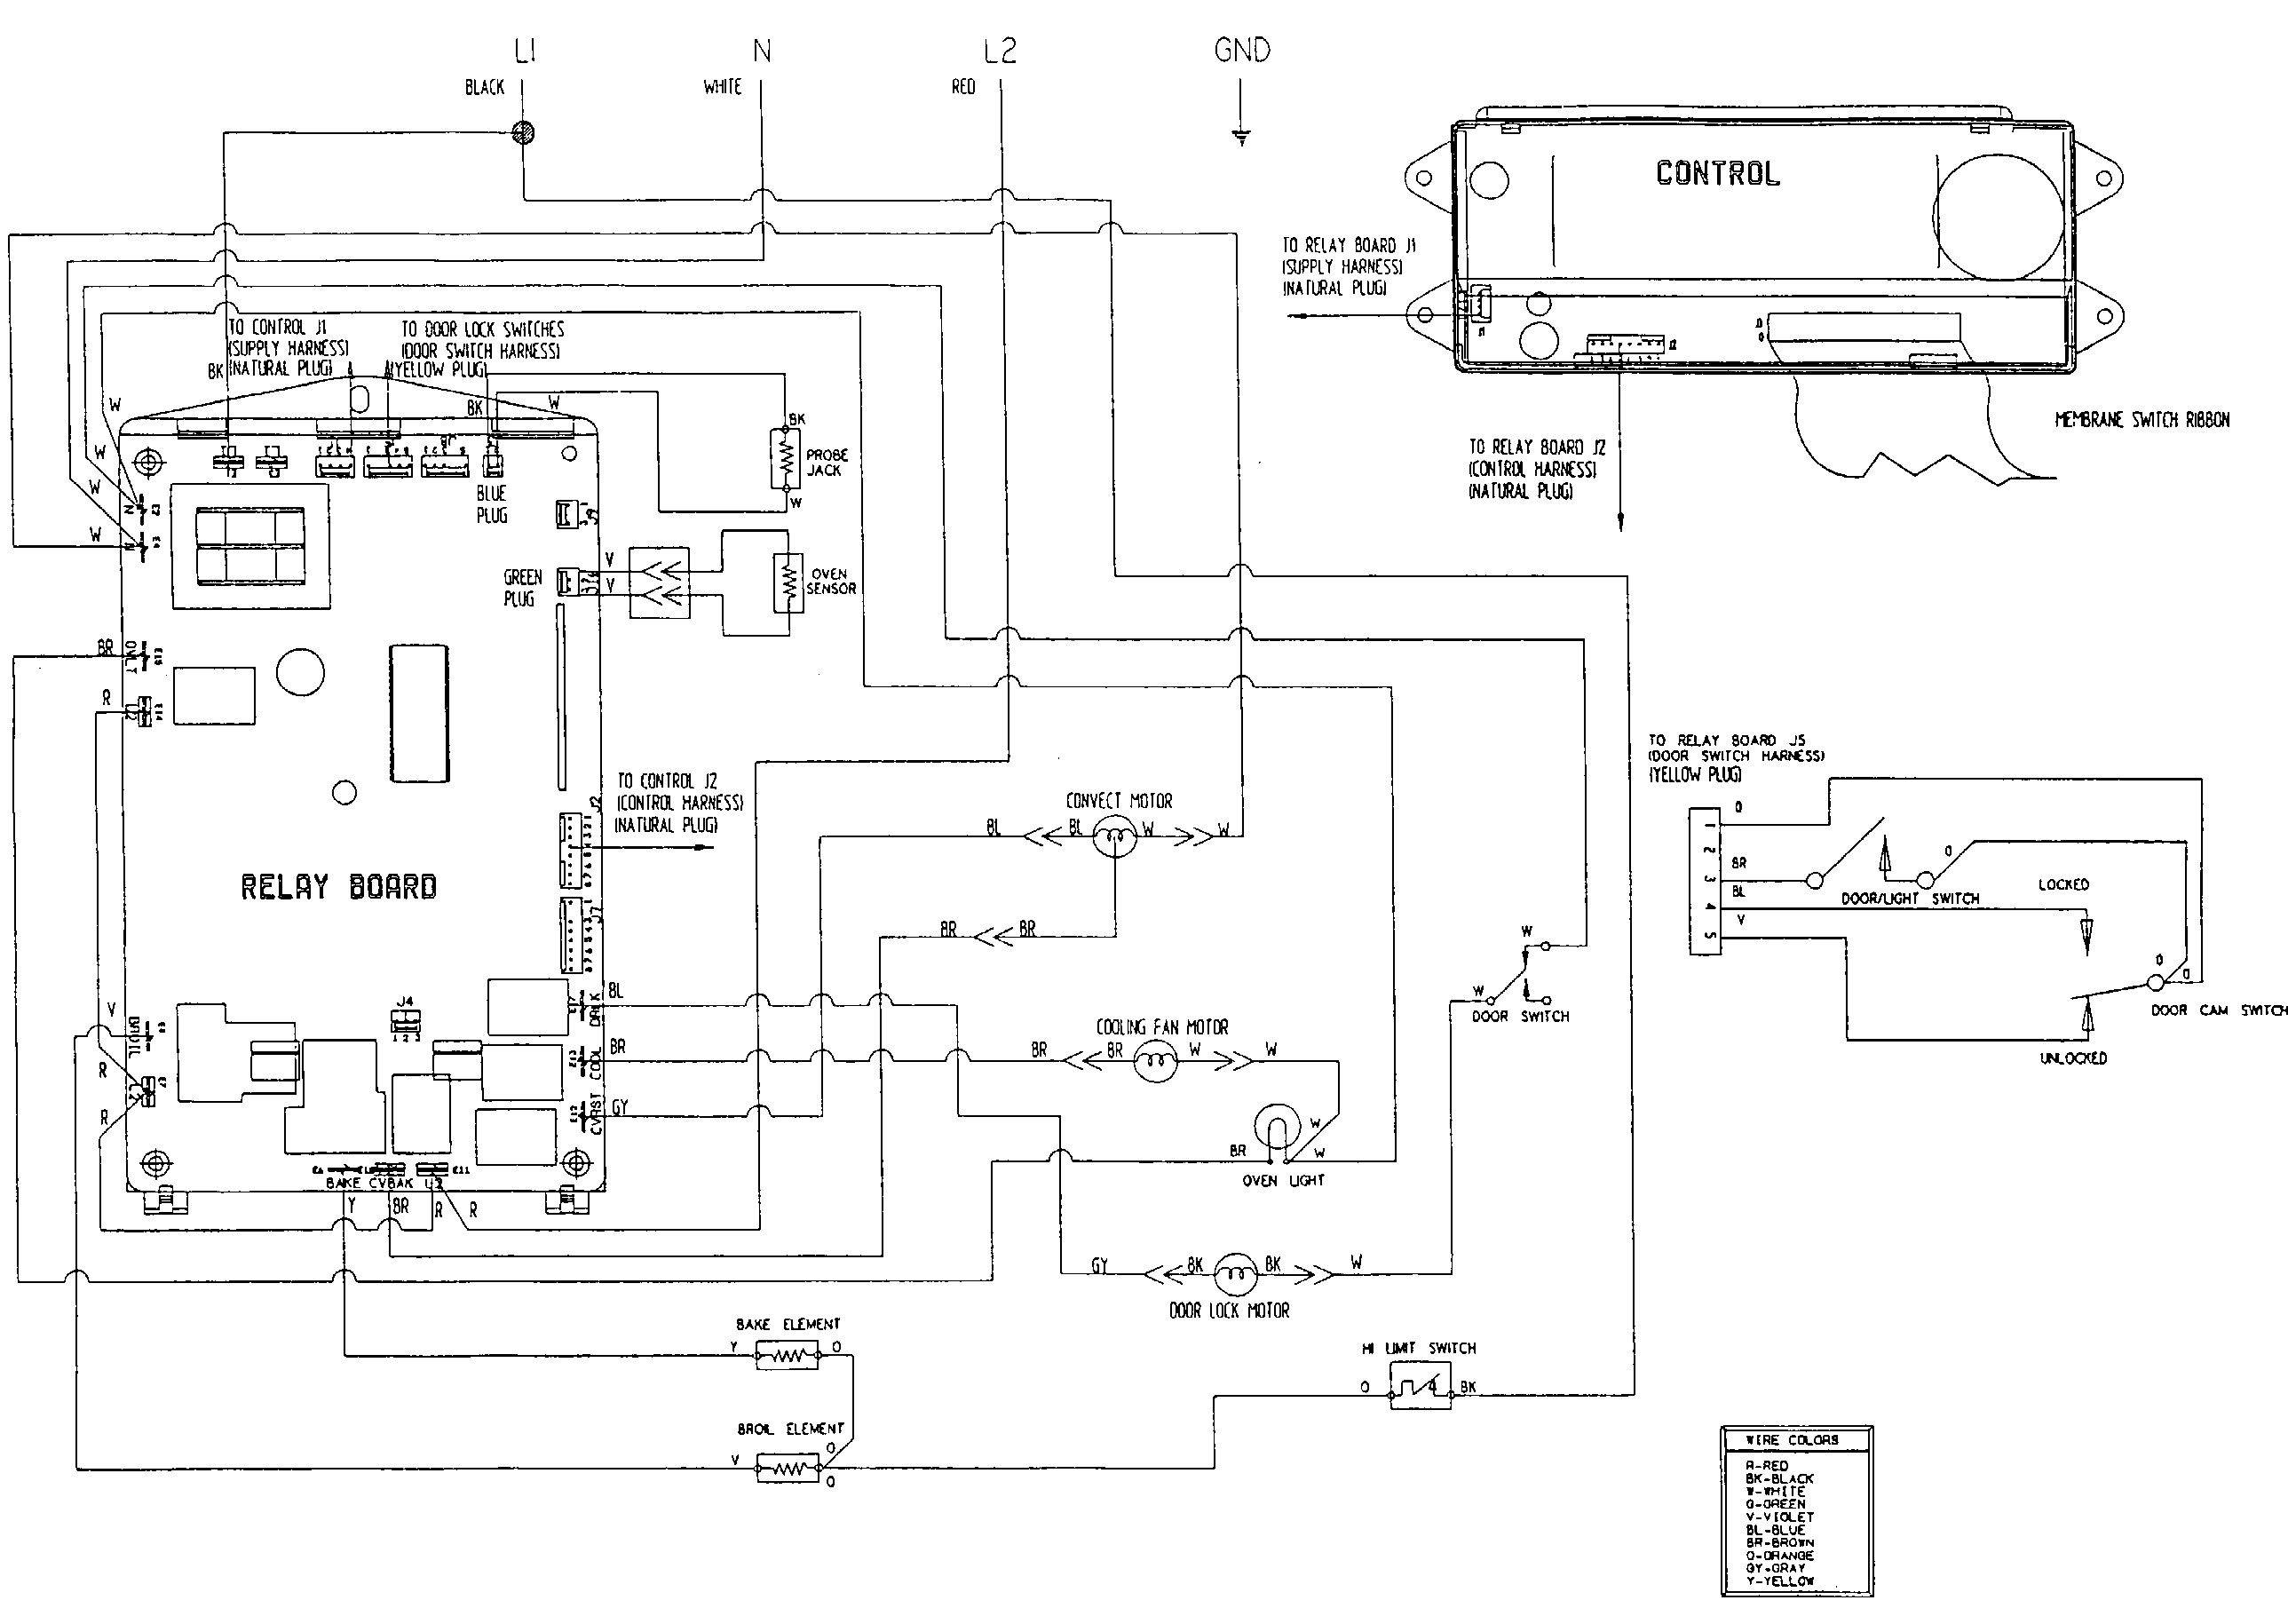 electrical wiring diagram of rice cooker 1997 f150 jenn air w30400bc electric wall oven timer stove clocks